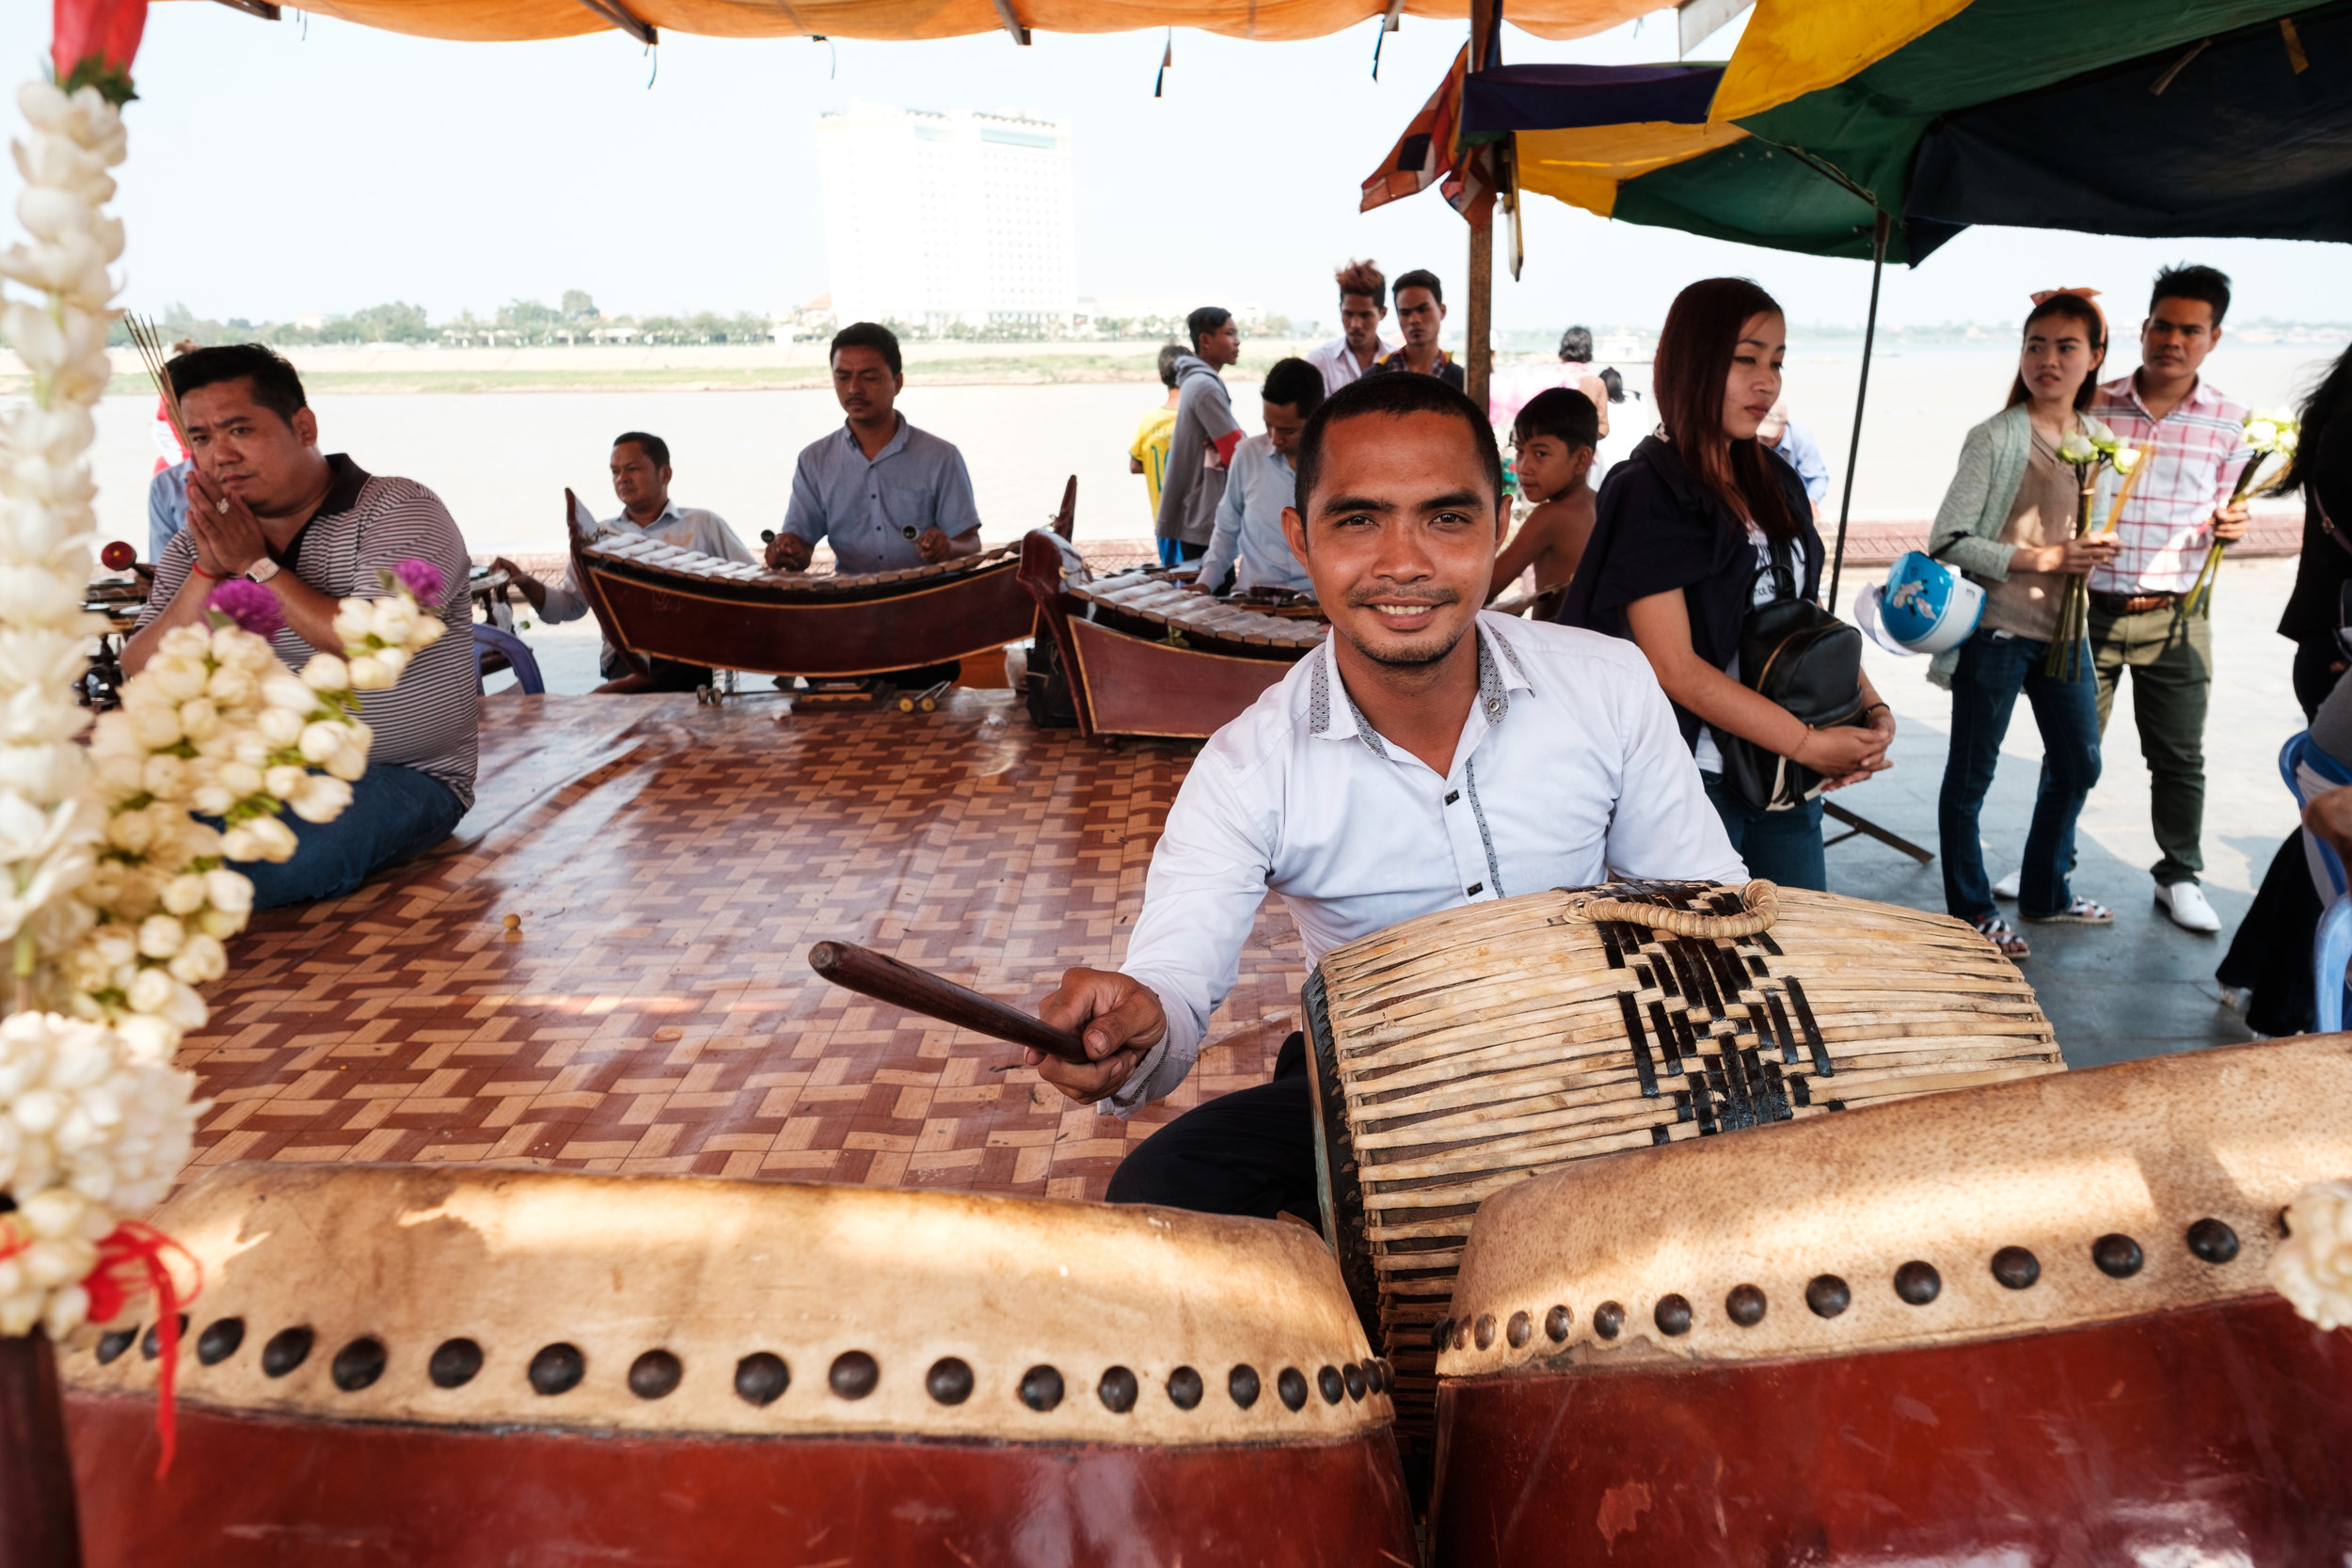 A drummer is part of a ceremony giving offerings to buddha in Phnom Penh Cambodia